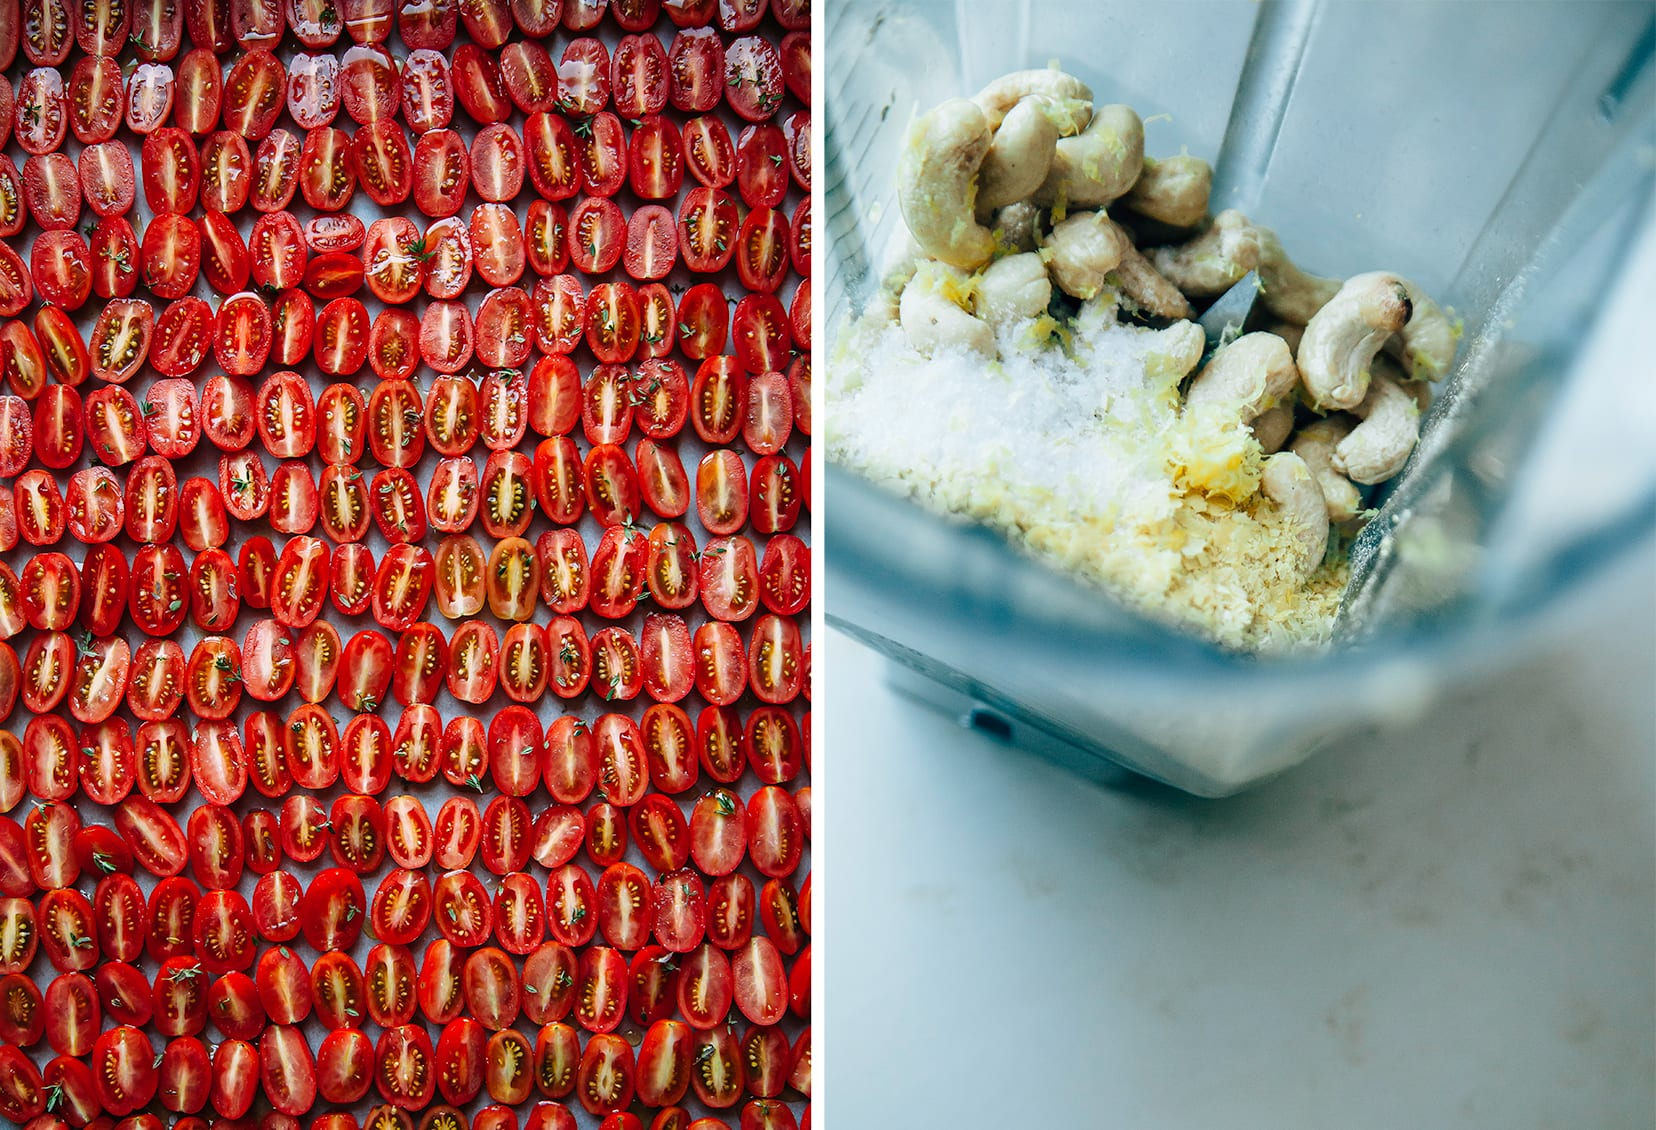 Two photos show a bunch of halved grape tomatoes, and the beginnings of a creamy cashew sauce in a blender.